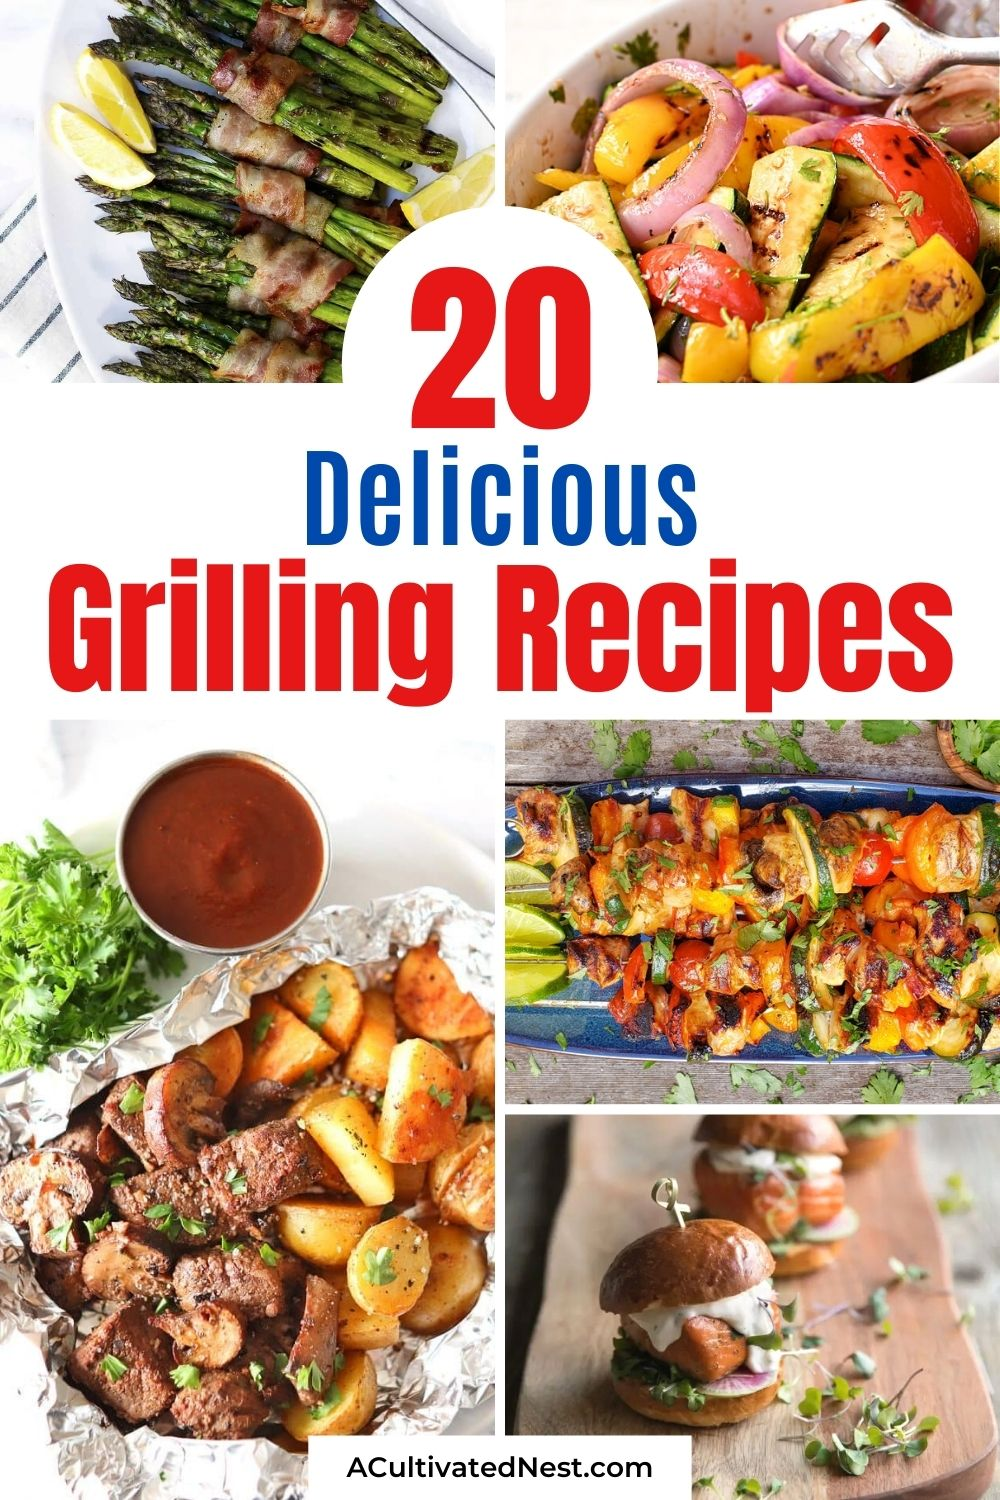 20 Delicious Grilling Recipes- You will be drooling when you taste these 20 delicious grilling recipes! They are perfect for all your summer parties and get-togethers! | #grilling #grillRecipes #recipes #summerRecipes #ACultivatedNest